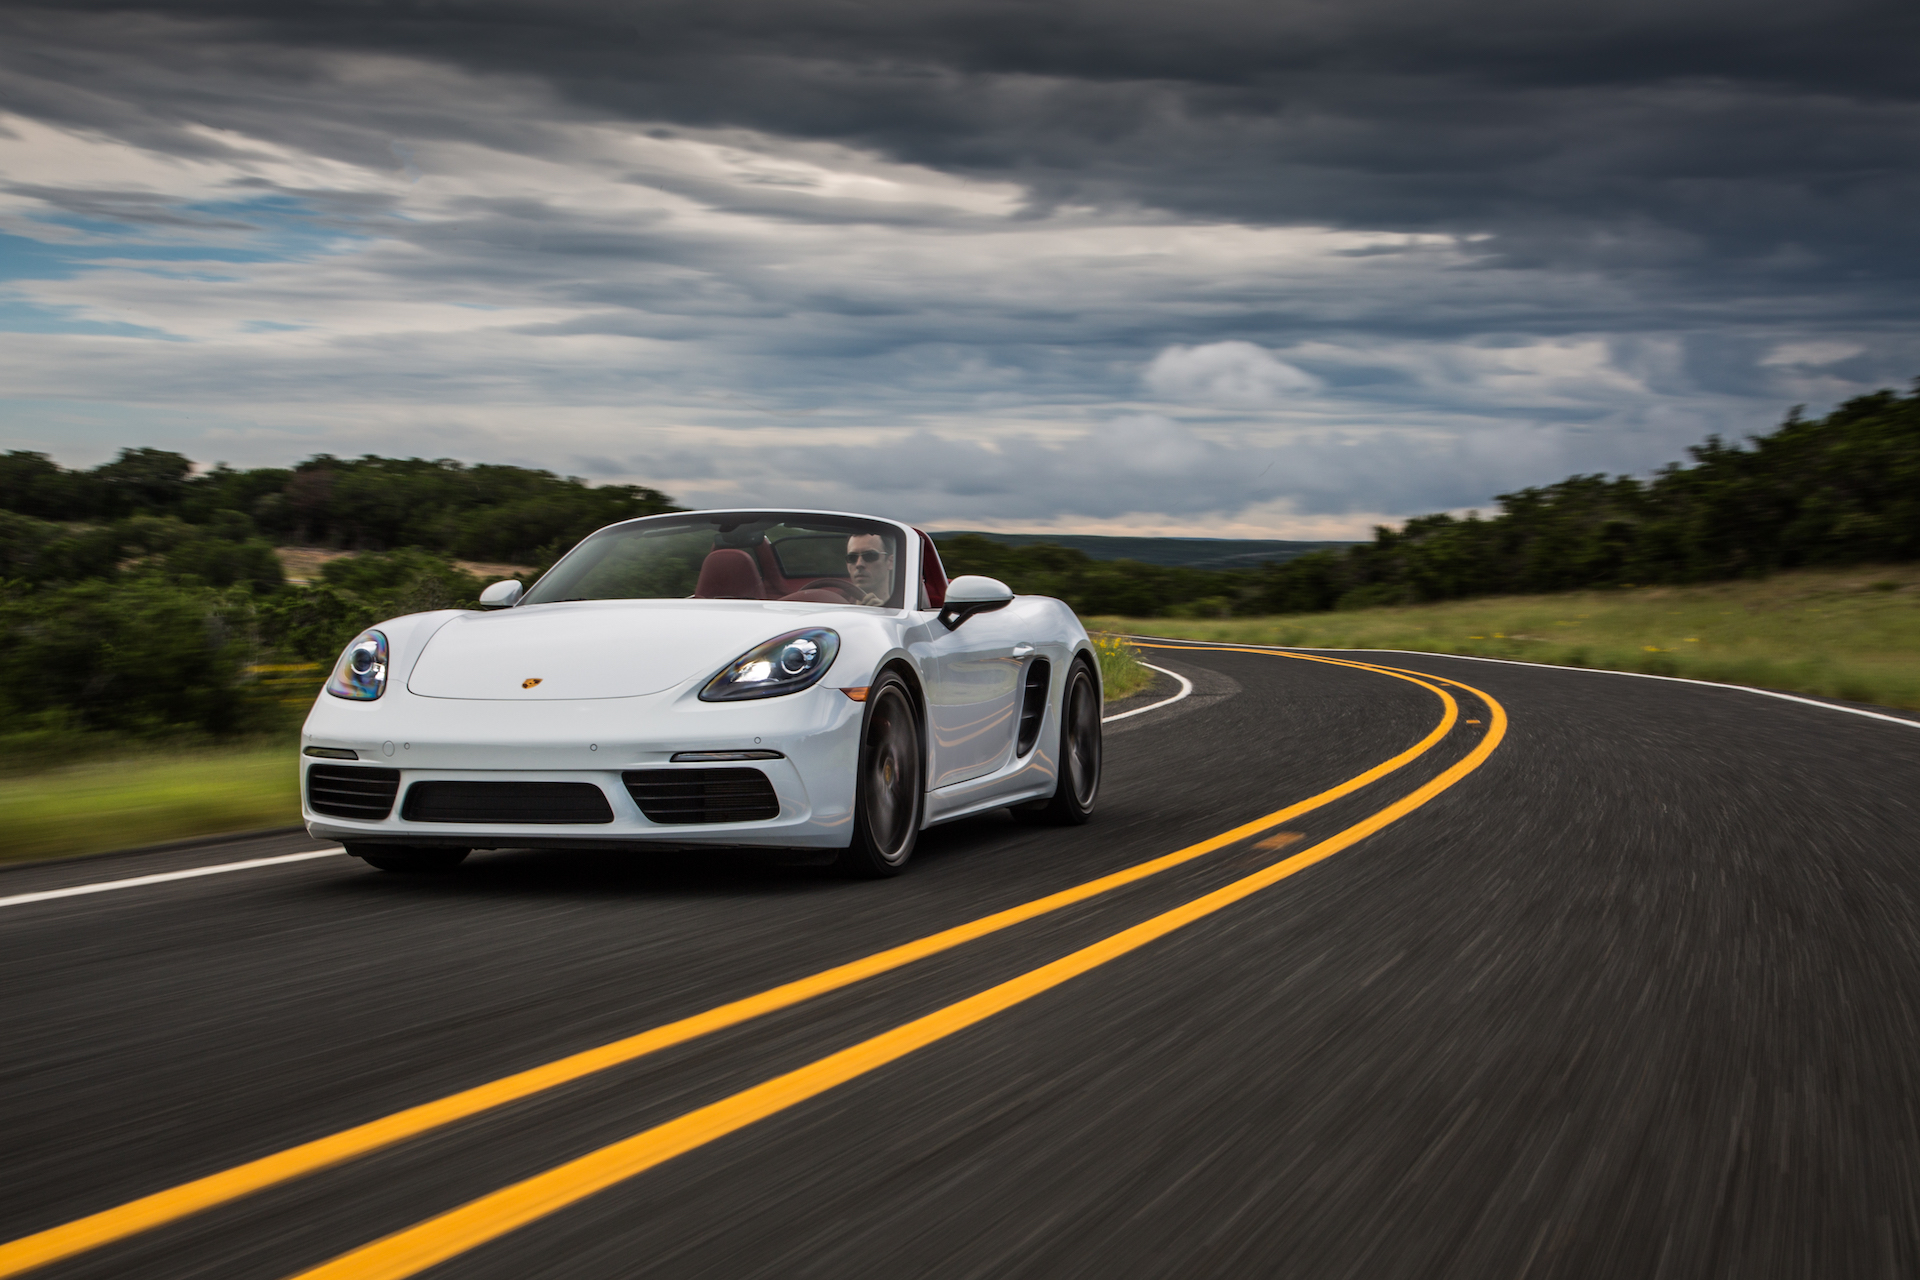 2017 Porsche 718 Boxster And Cayman First Drive Review Don T Play It By Ear